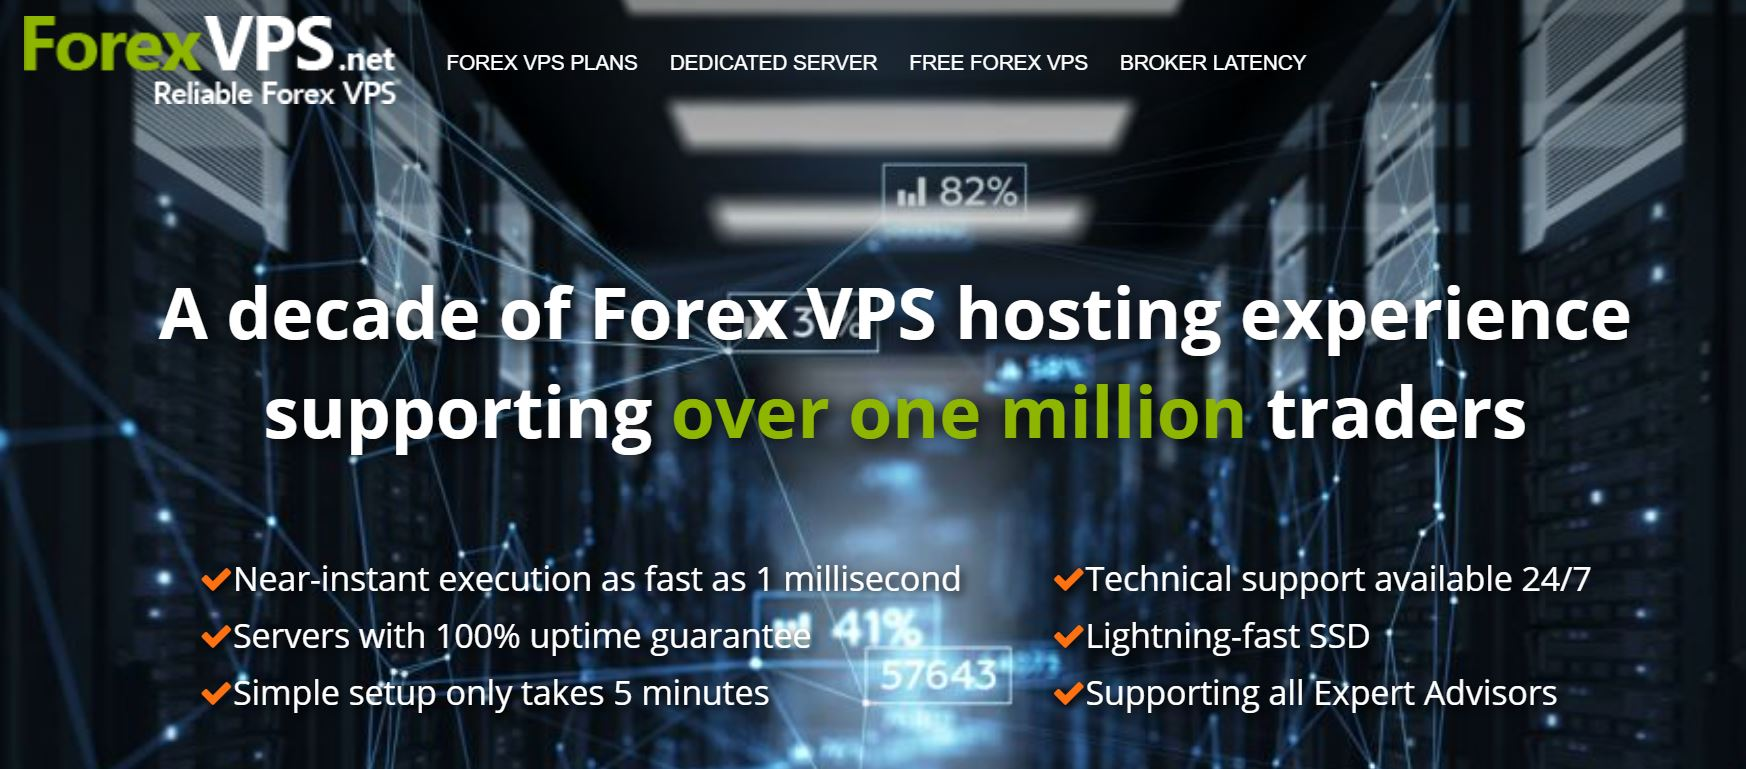 forexvps features